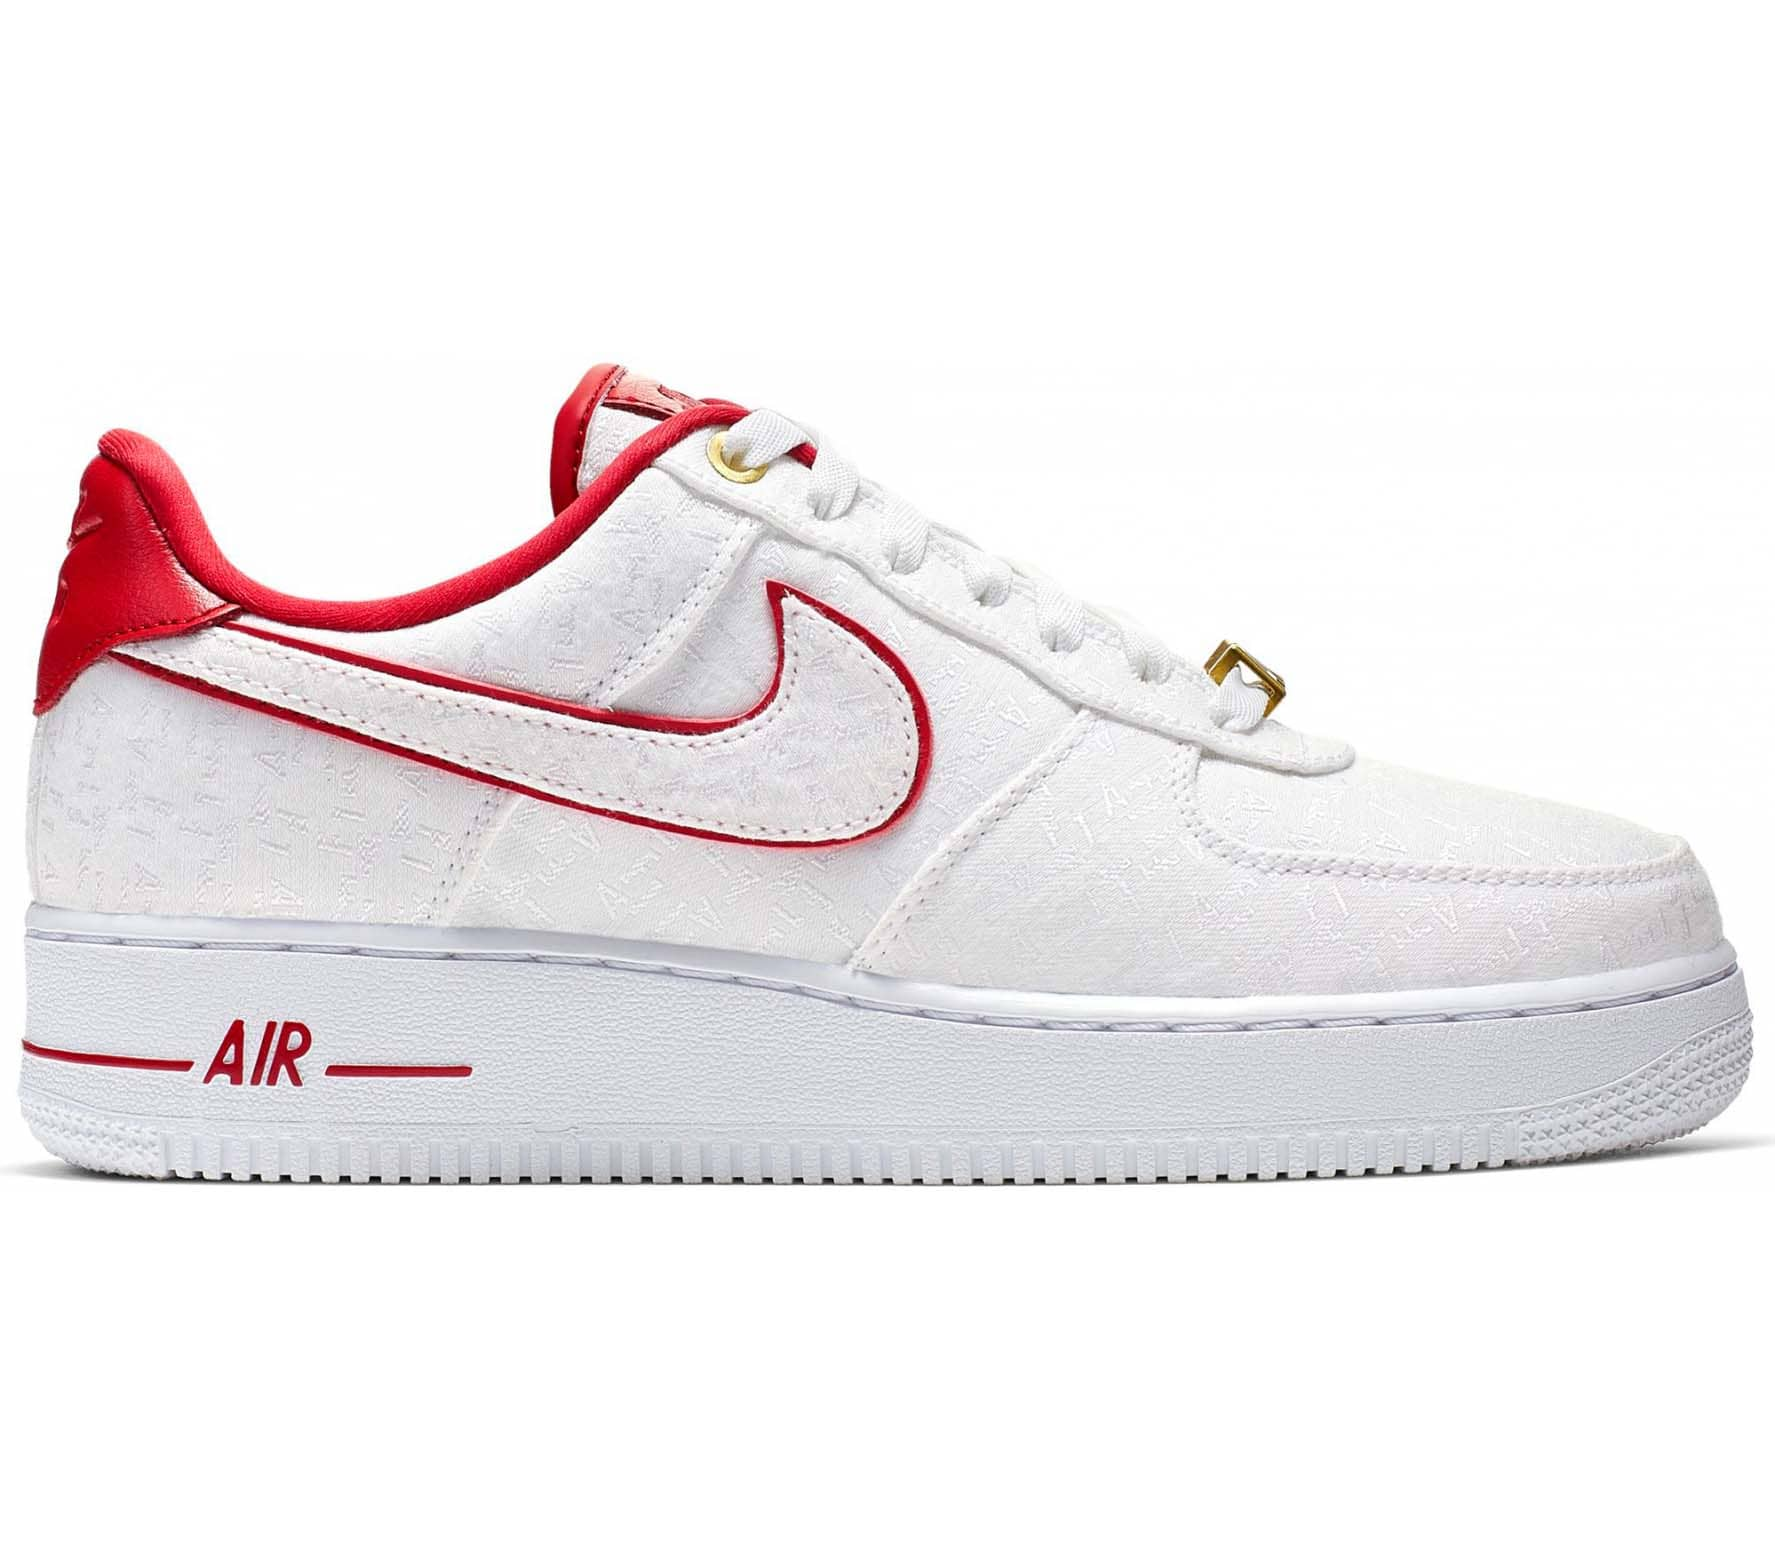 Nike Sportswear Air Force 1 '07 LX Damen Sneaker weiß